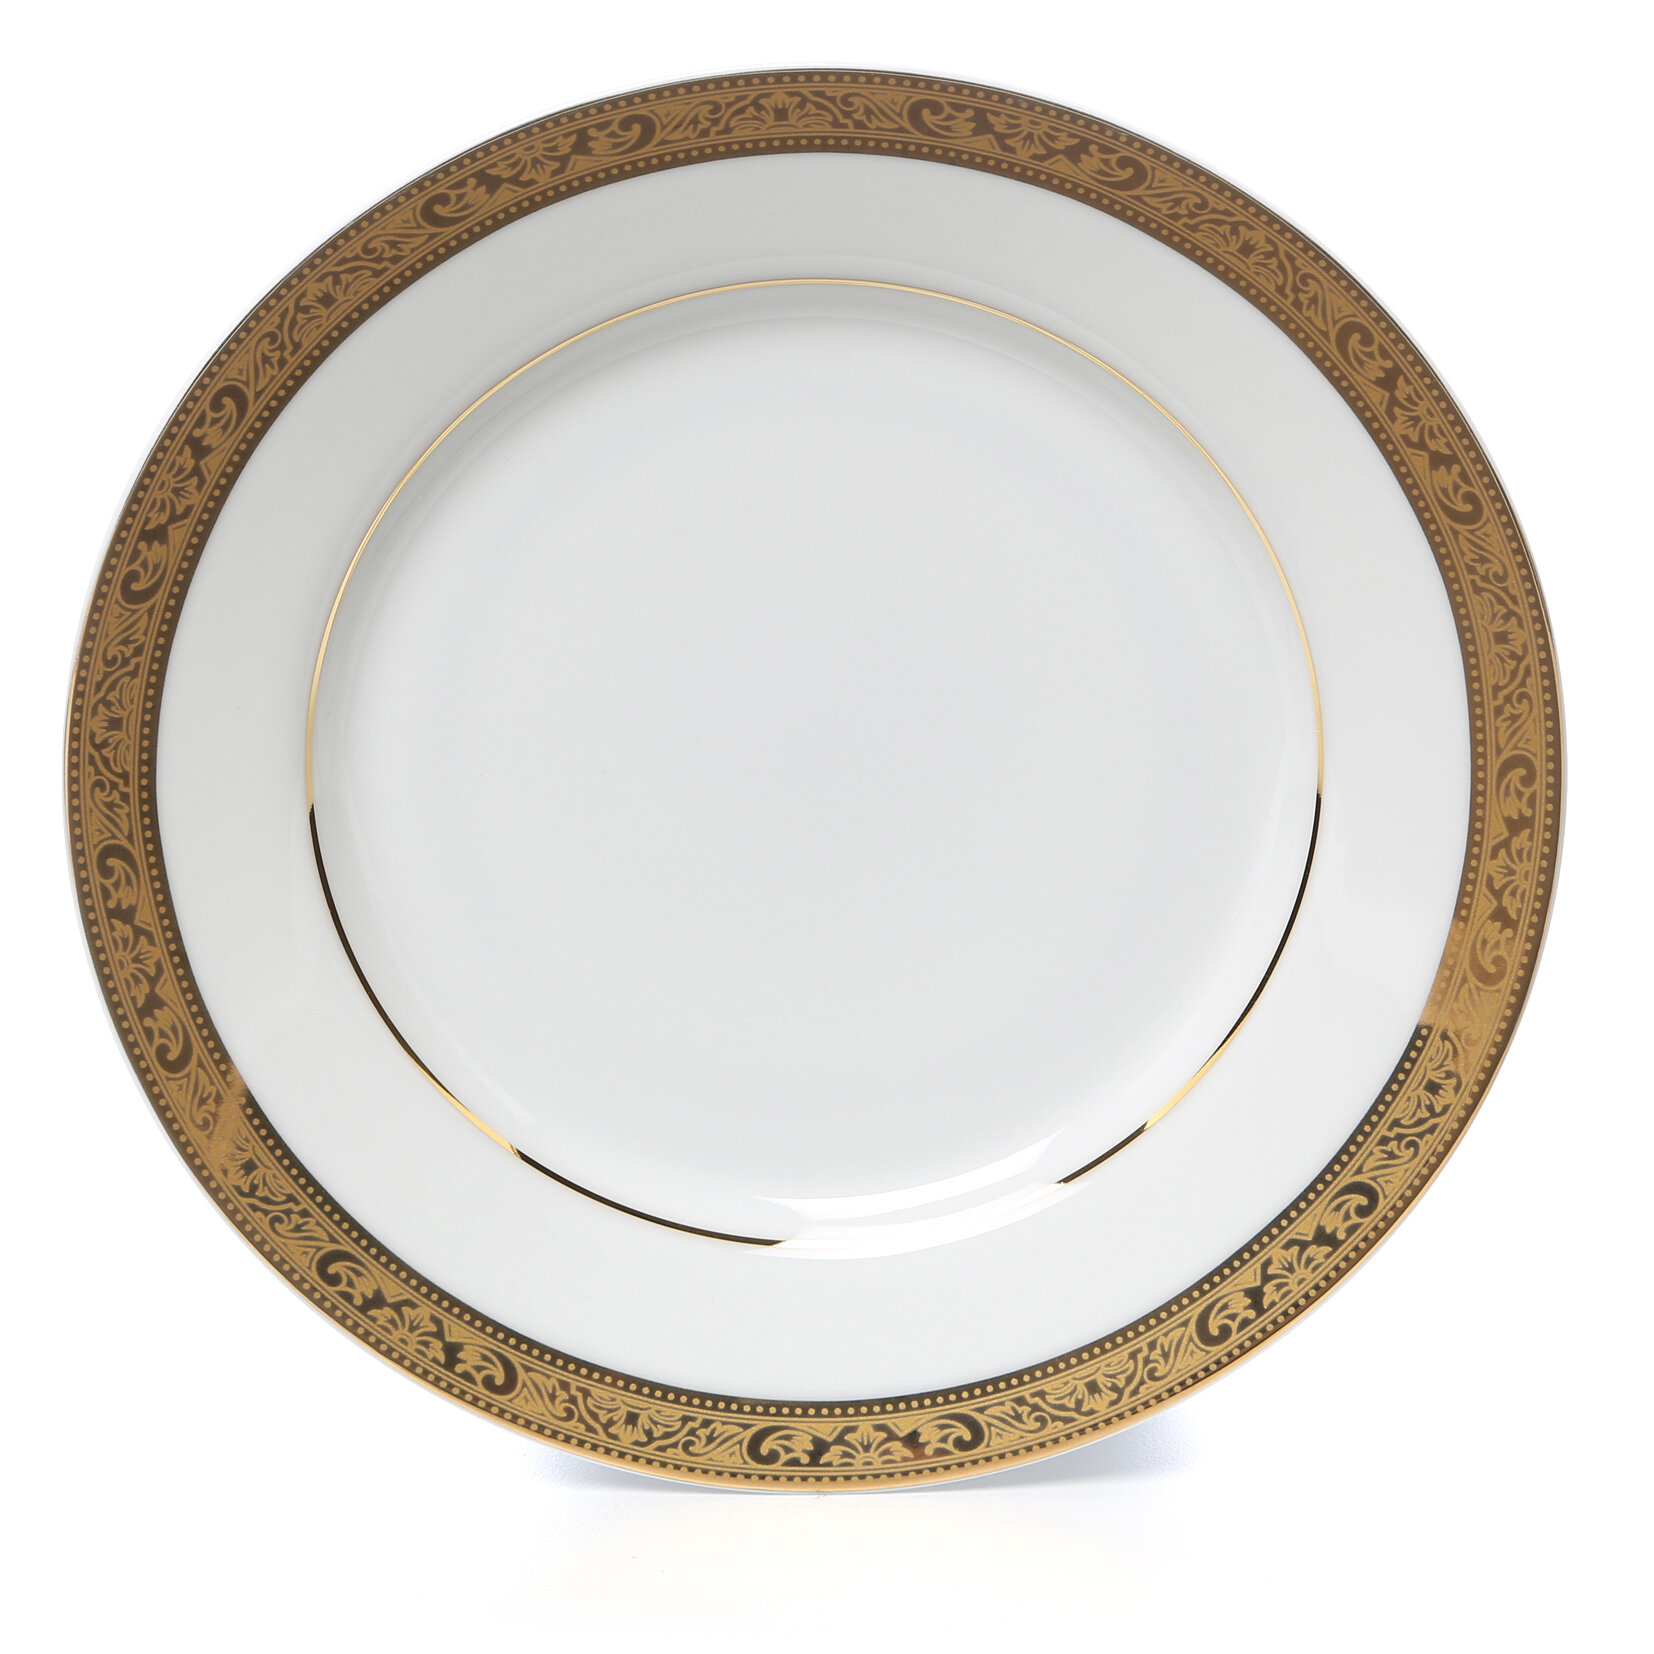 Astoria Grand Weatherspoon 6 Bread And Butter Plate Reviews Wayfair